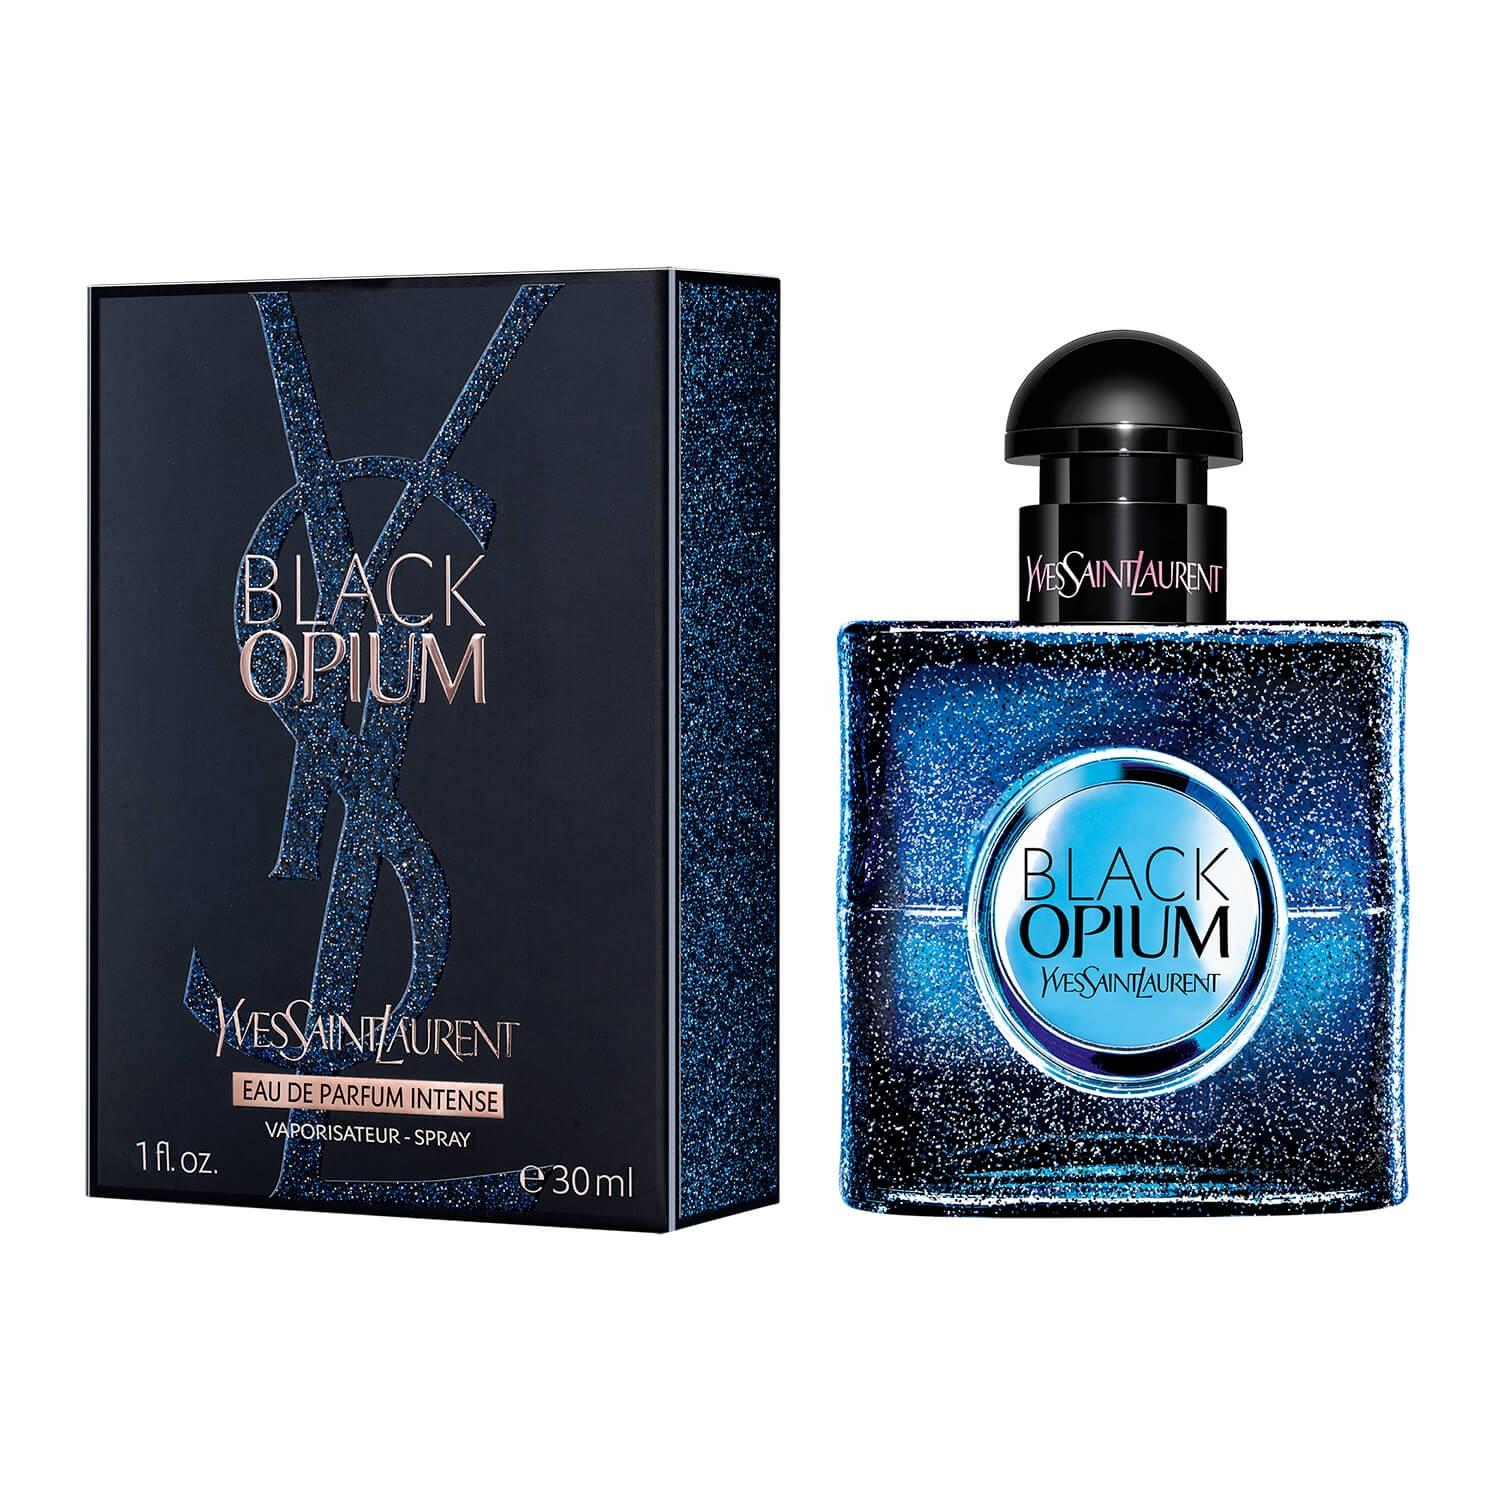 Perfume Feminino Black Opium Intense Yves Saint Laurent Eau de Parfum 30ml – Incolor